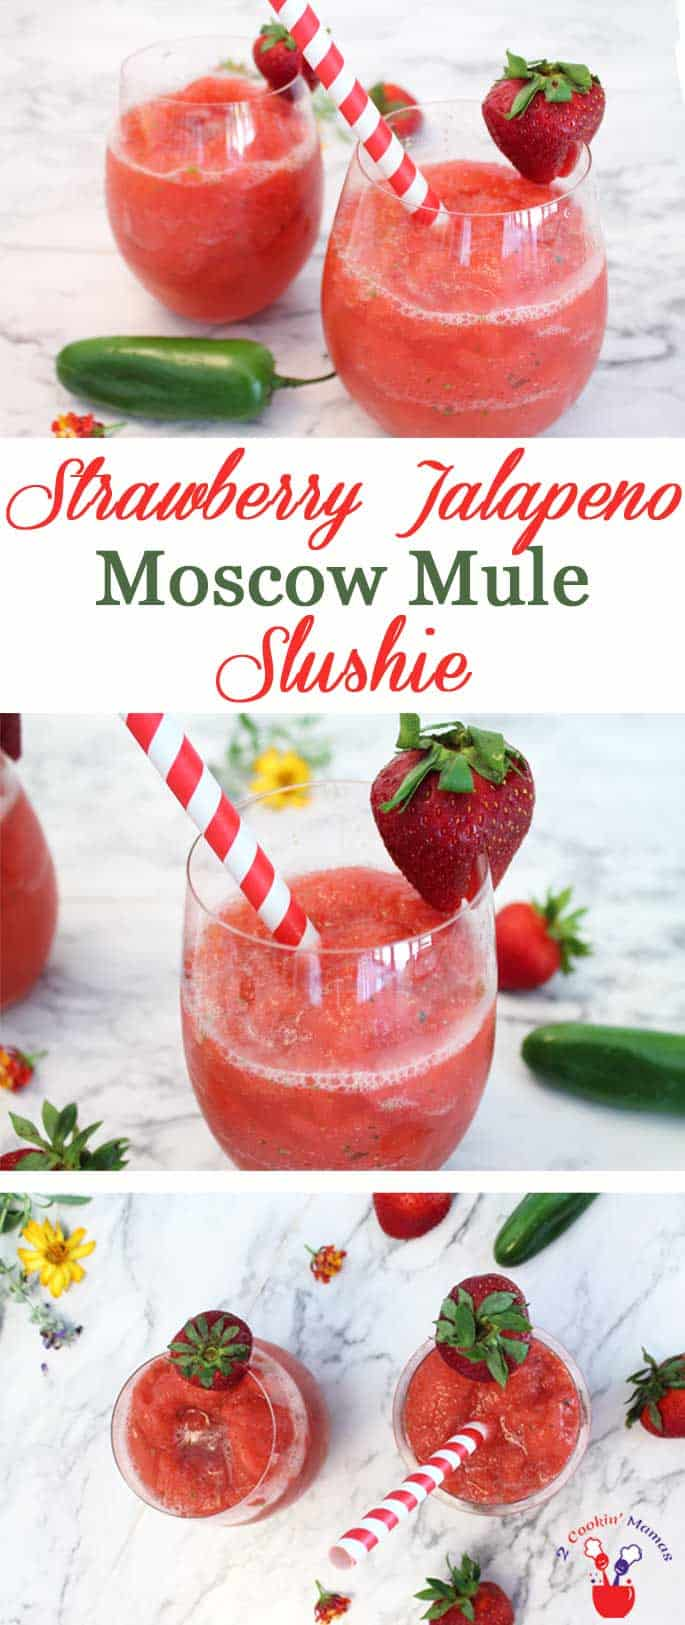 Strawberry Jalapeno Moscow Mule Slushie   2 Cookin Mamas Ready to add a little cool & spicy to your Moscow Mule? Enter our Strawberry Jalapeno Moscow Mule Slushie, just what the doctor ordered to beat the heat!